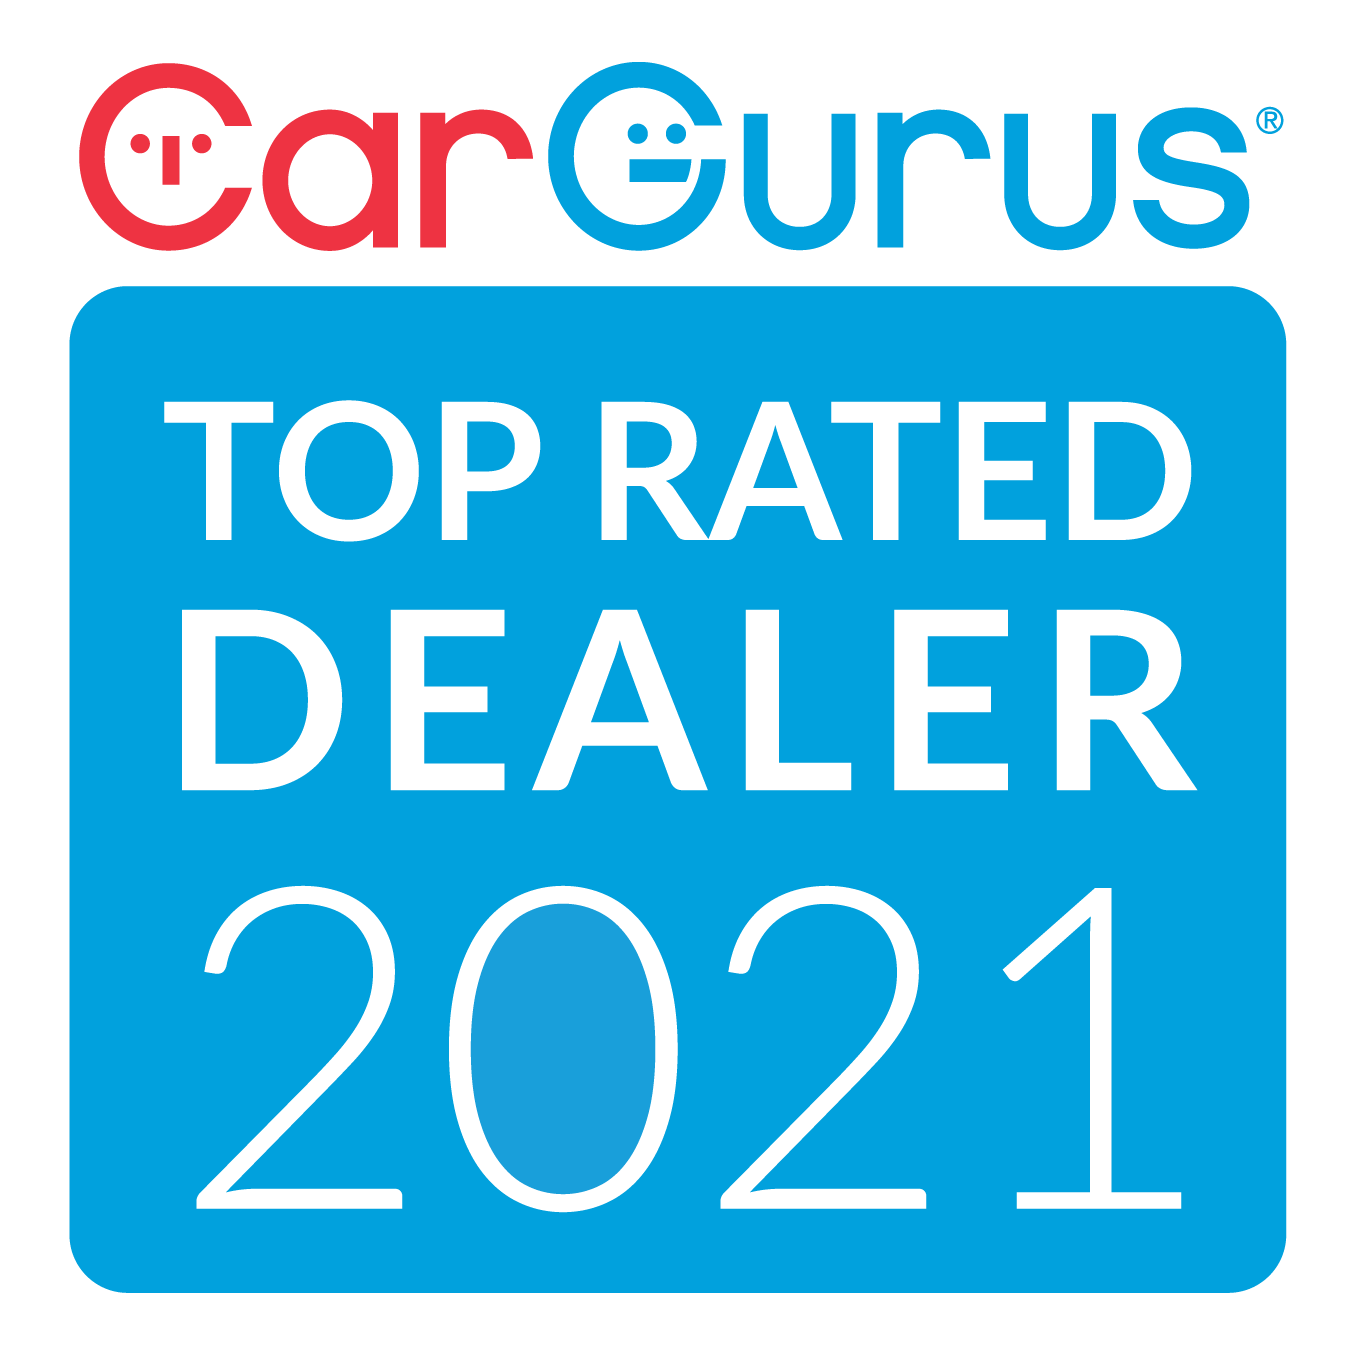 2020 Top Rated Dealer